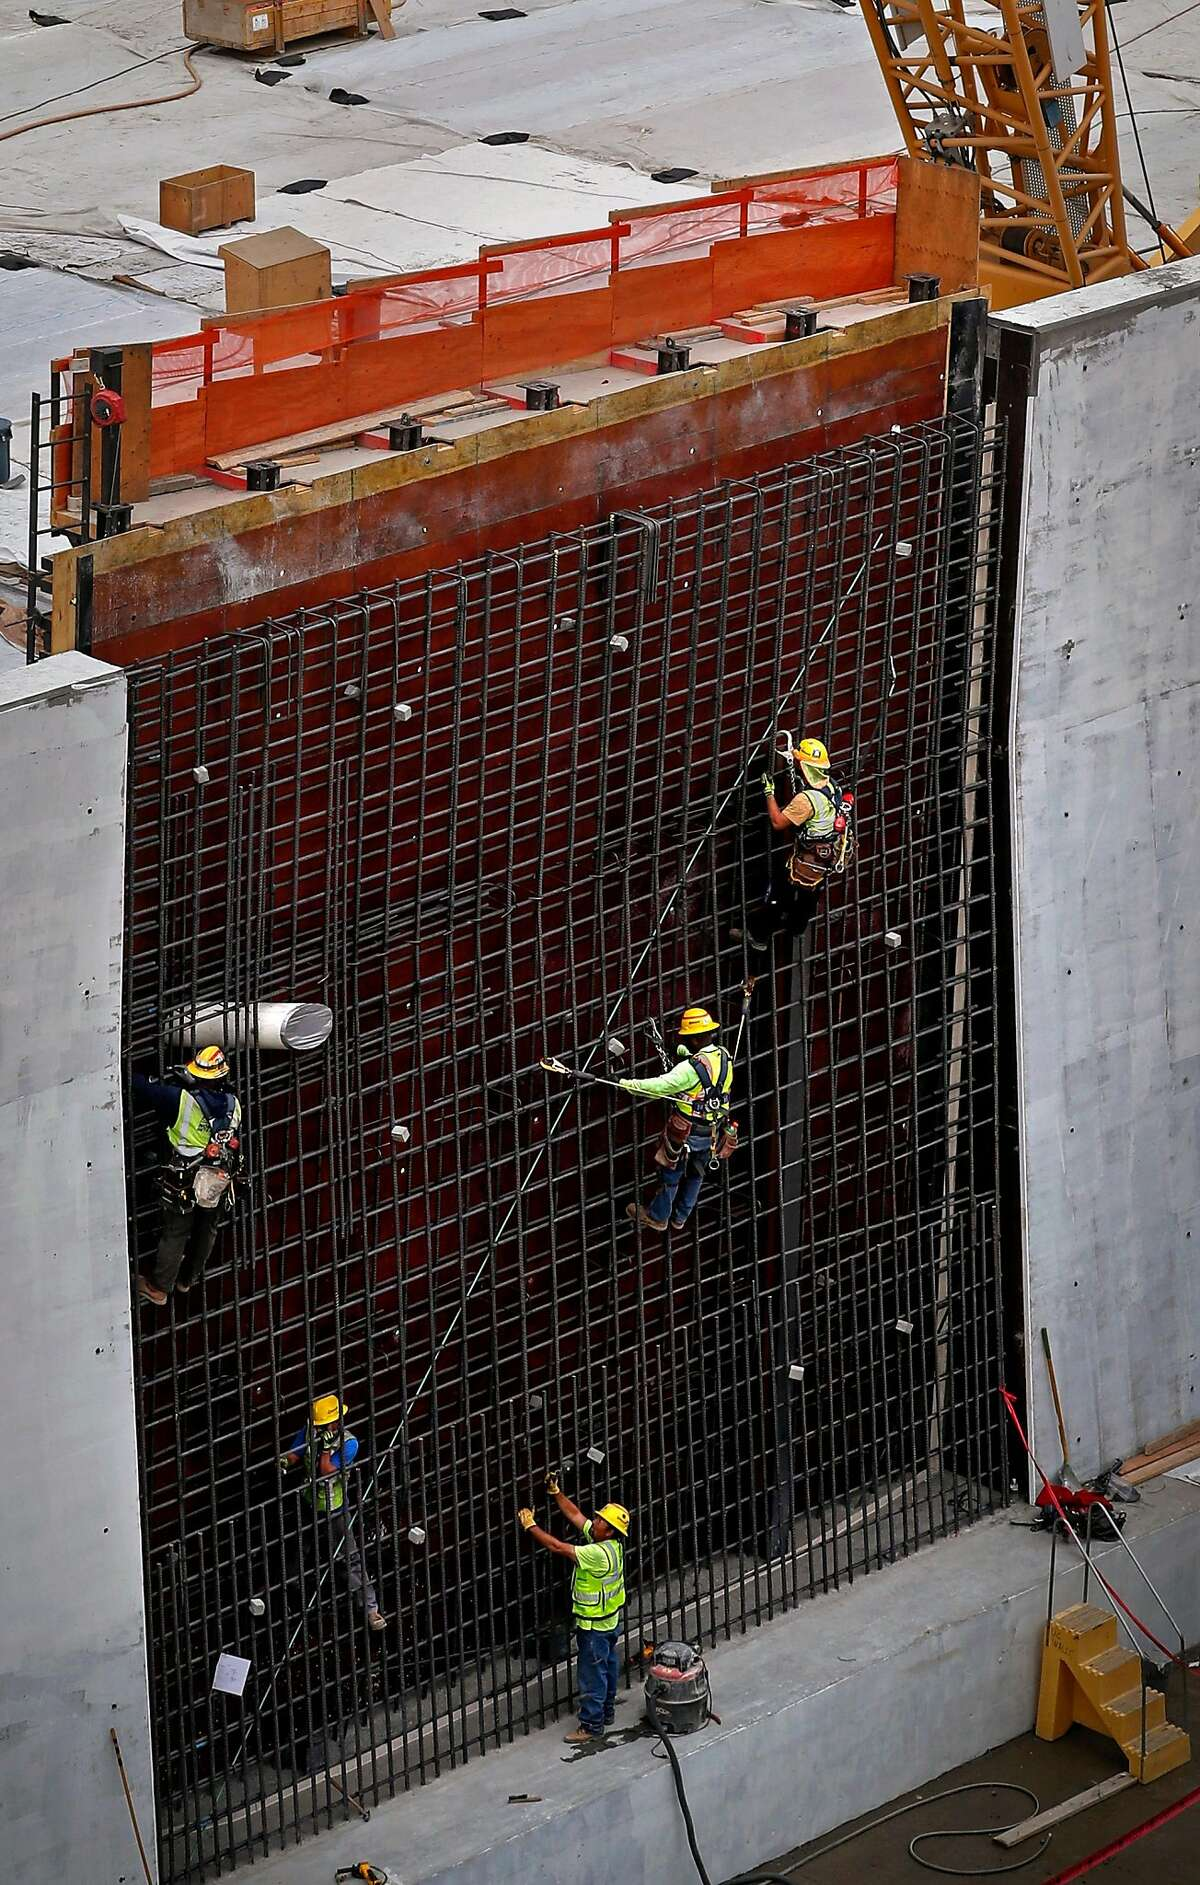 Workers set the rebar in the concrete forms to build the walls of the main spillway as construction and repairs continue on the Oroville Dam, in Oroville, Ca., on Thursday October 19, 2017.